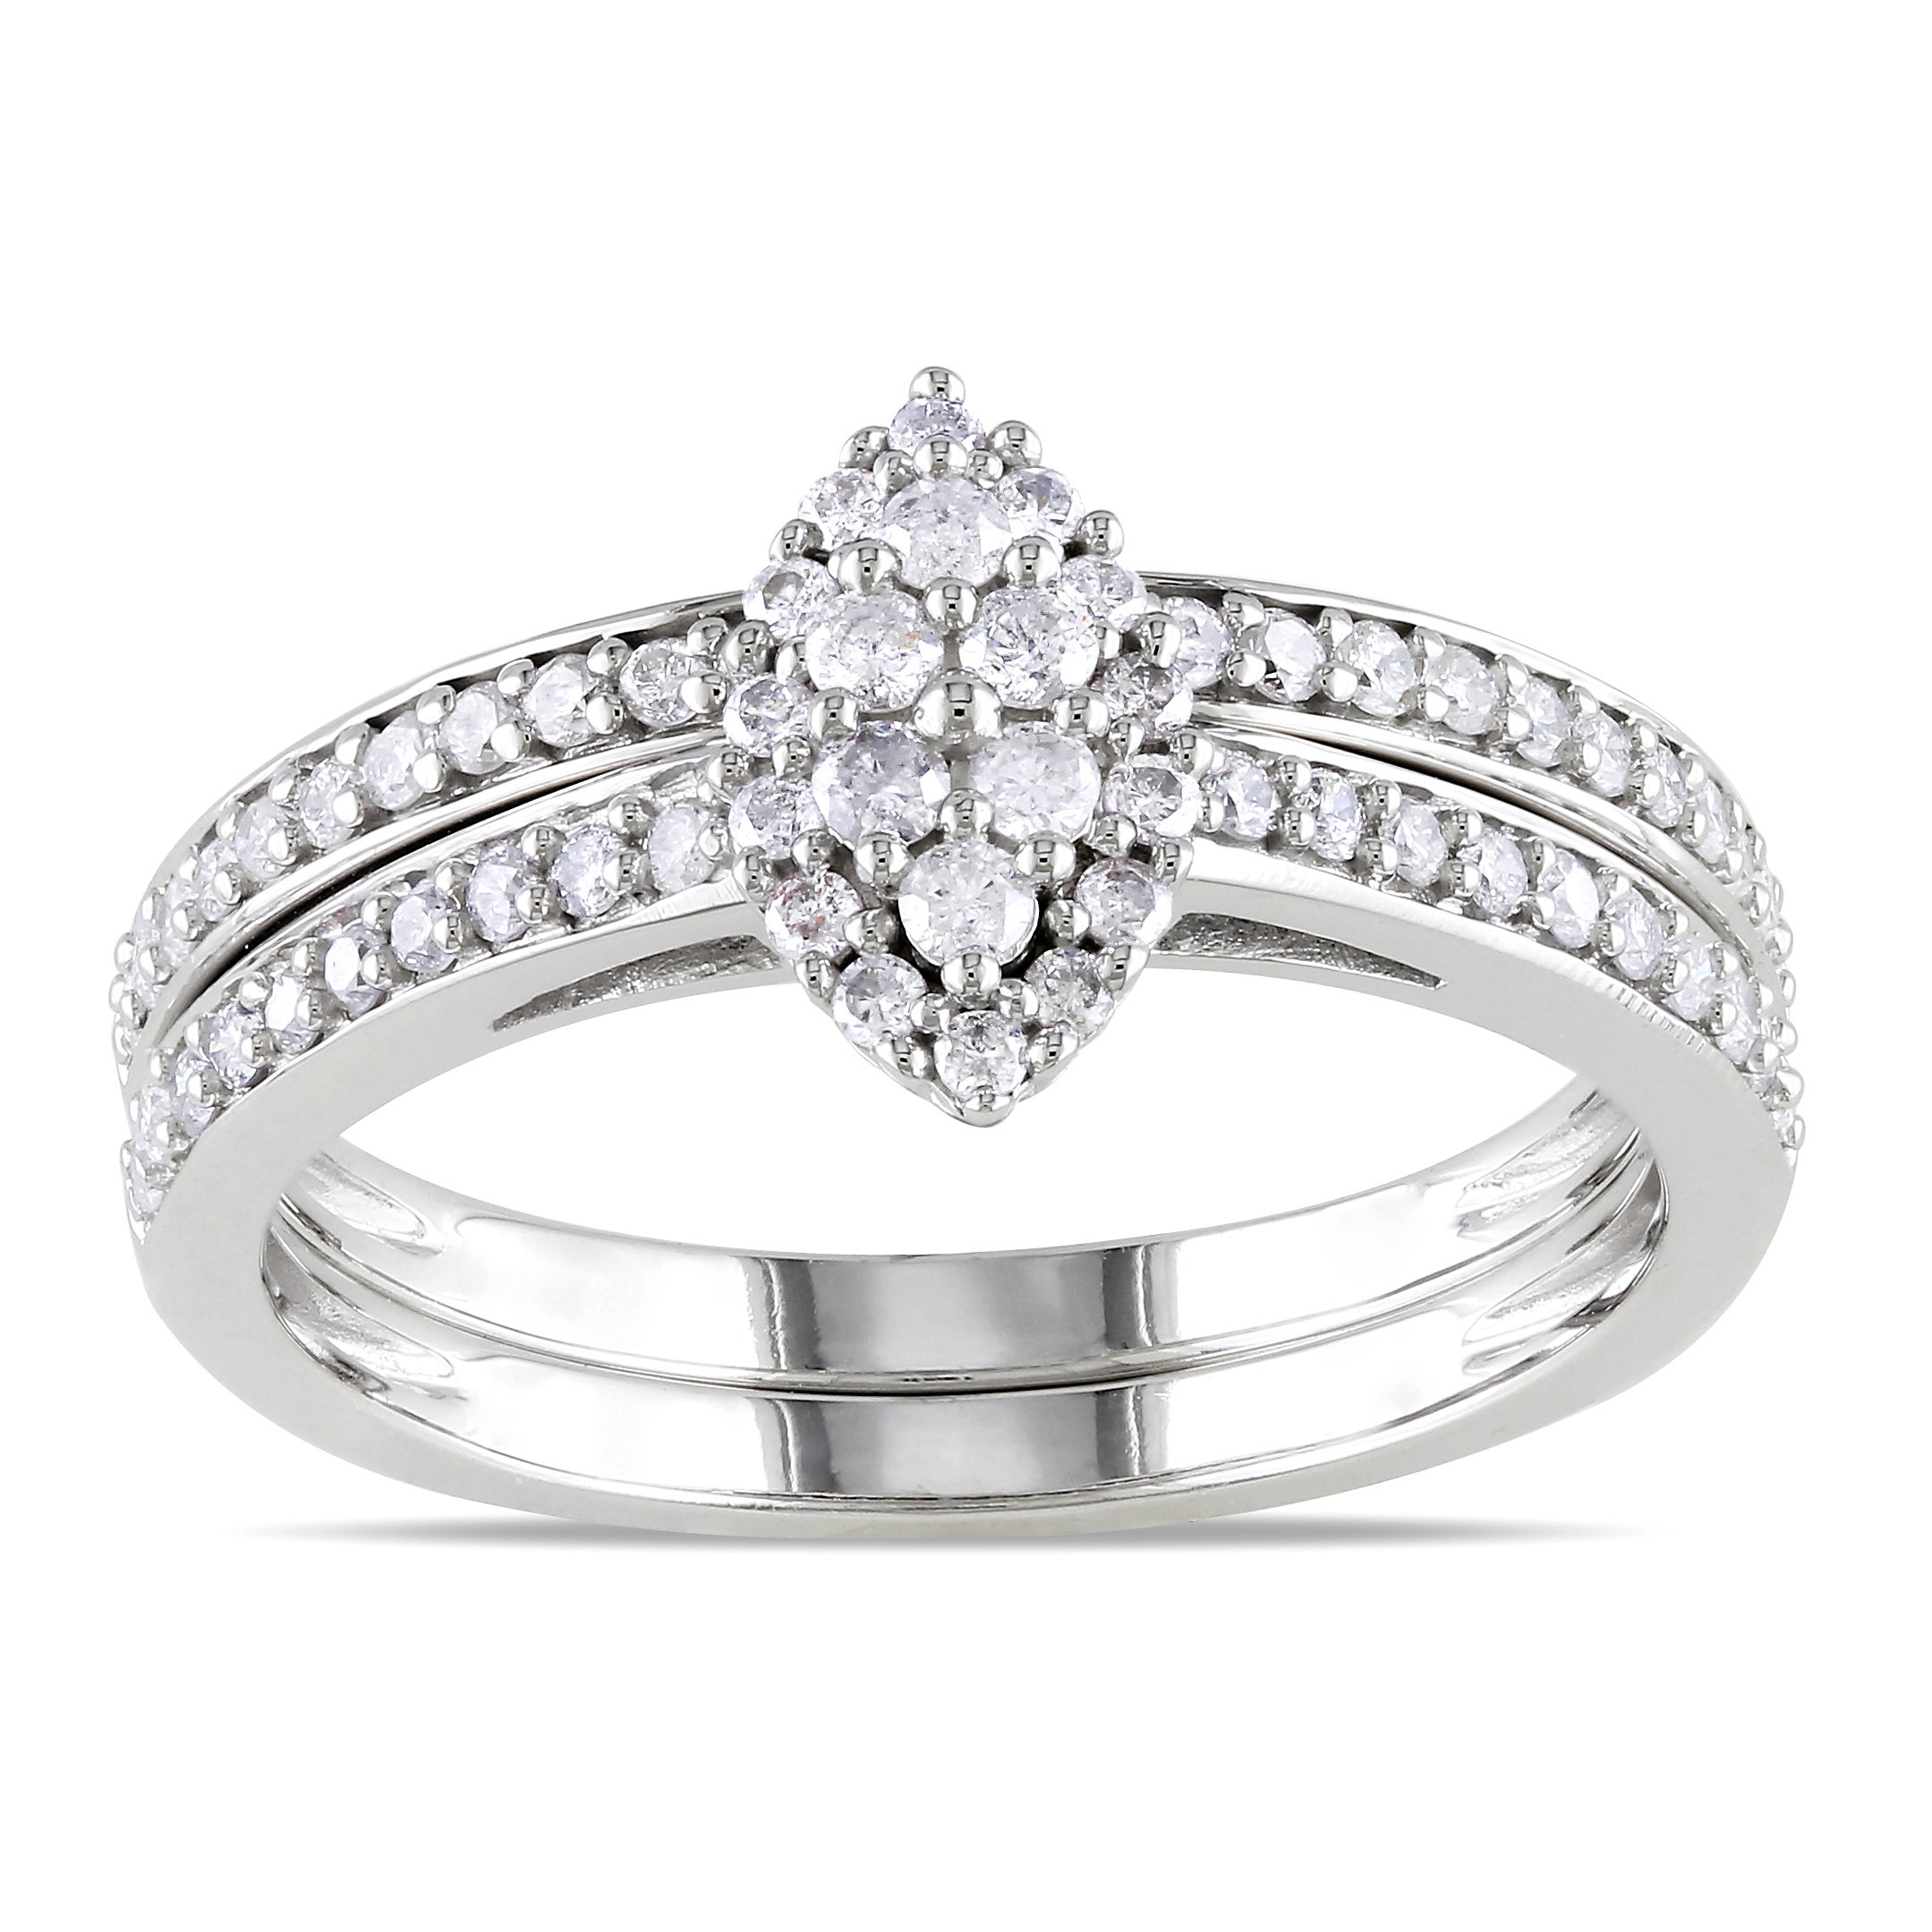 Miadora 10k White Gold 1/2ct TDW Diamond Bridal Ring Set (H-I, I2-I3) at Sears.com